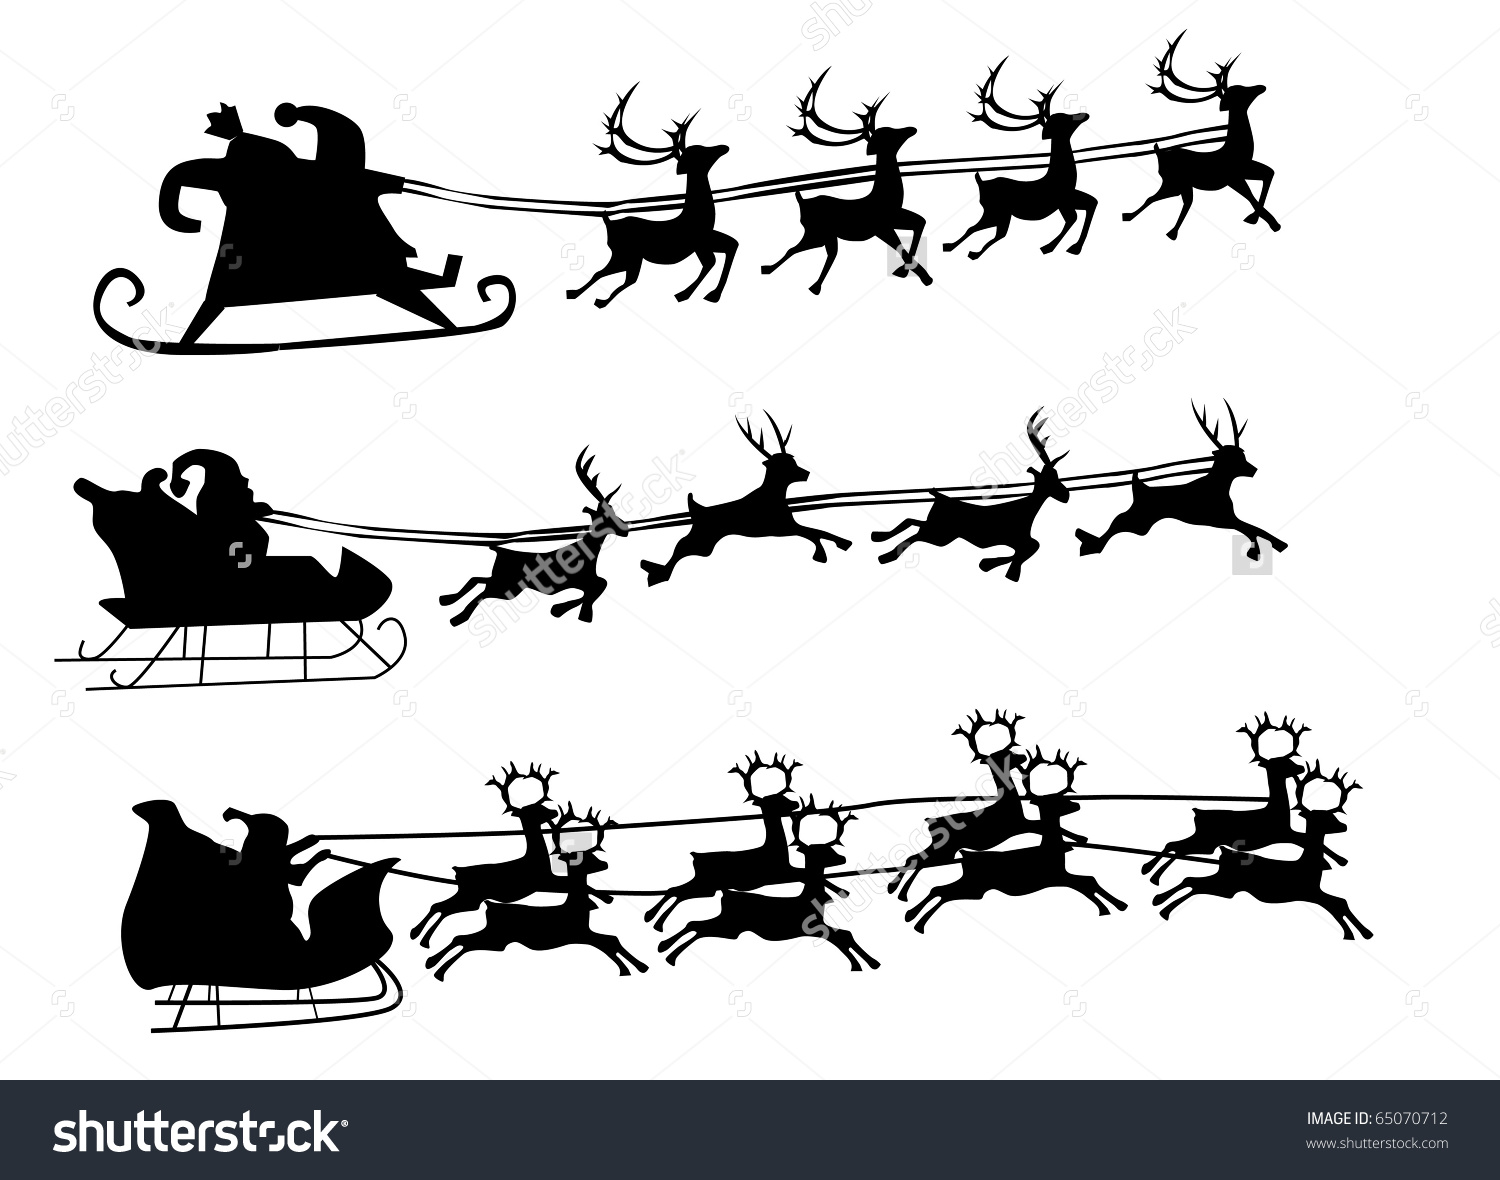 santa and reindeer silhouette clipart #11